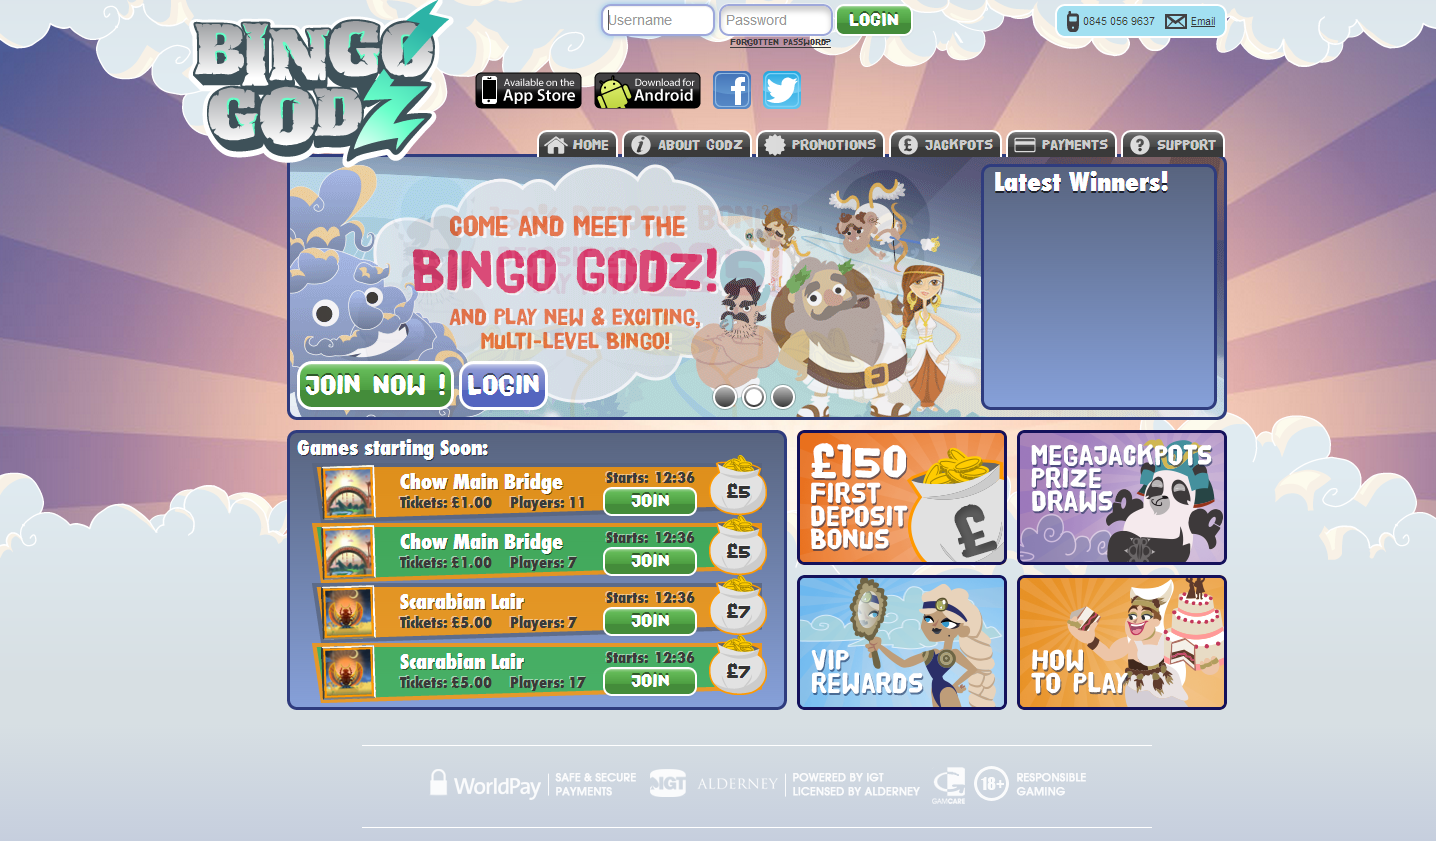 Online Casino ladbrokes bingo uk bingo hq That Accepts PayPal